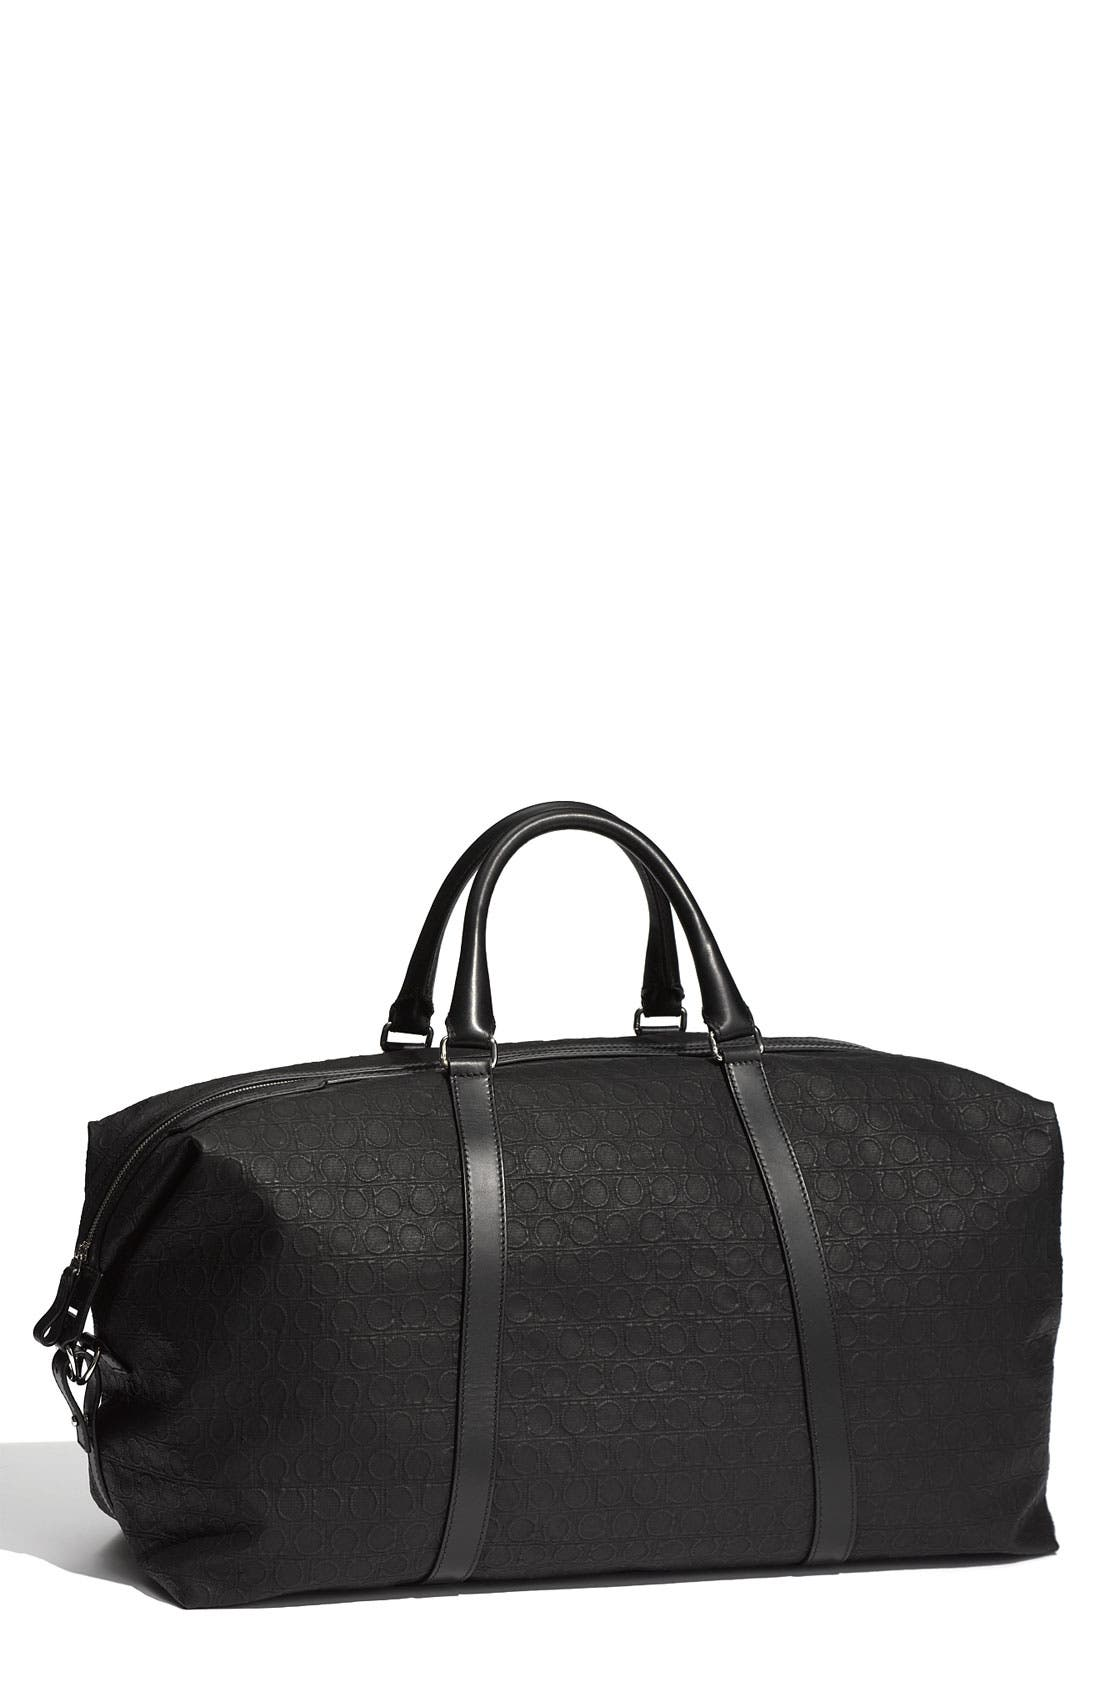 Alternate Image 1 Selected - Salvatore Ferragamo 'Miami Borsone Morbido' Duffel